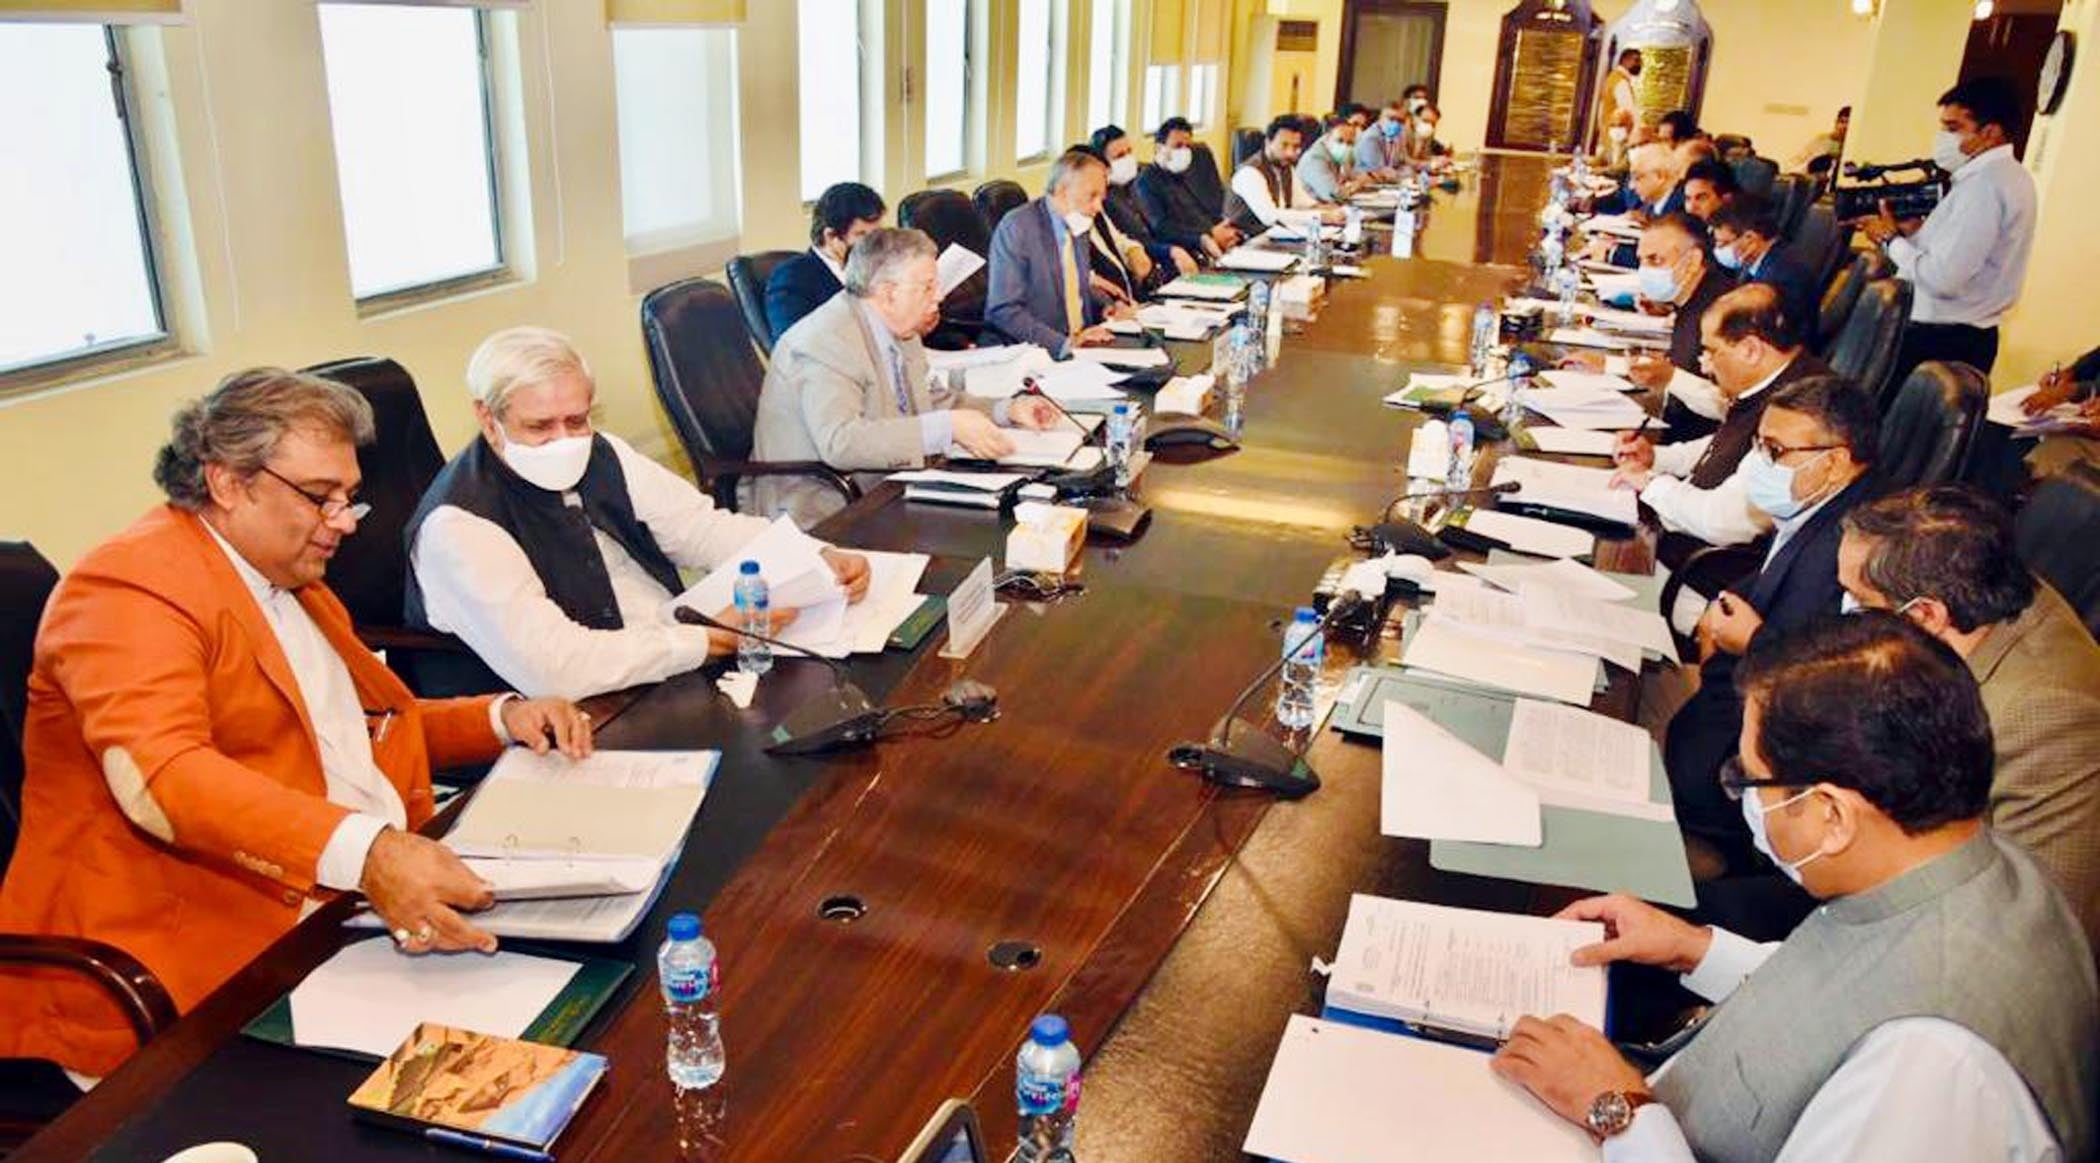 Finance Minister Shaukat Tarin chairs a meeting of the Economic Coordination Committee on Wednesday. — Photo courtesy: PID